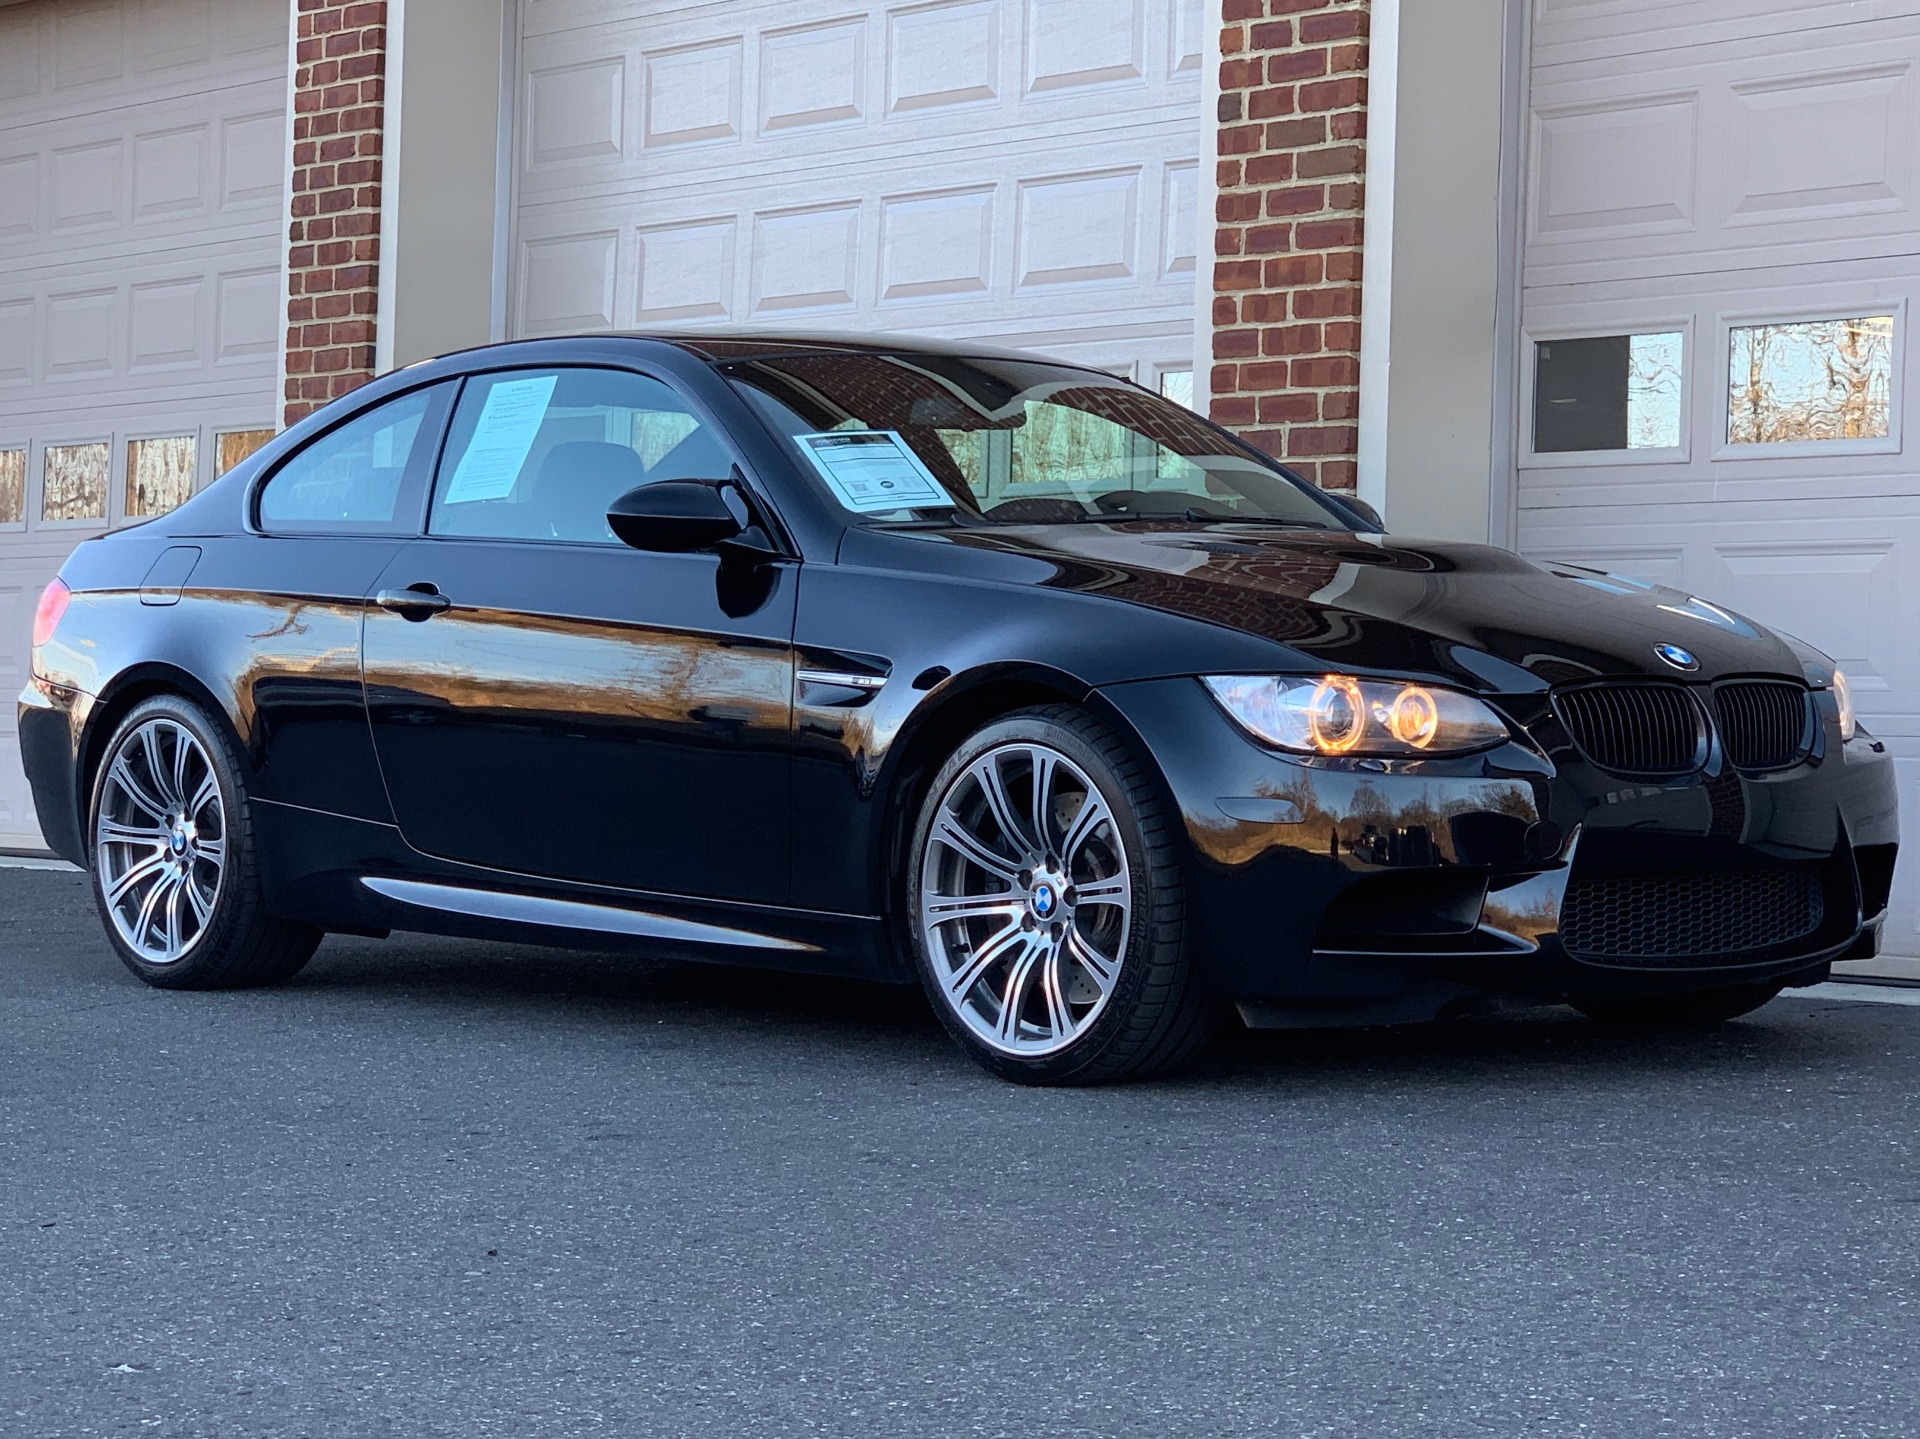 2009 bmw m3 coupe stock 361744 for sale near edgewater - Used bmw m3 coupe for sale ...